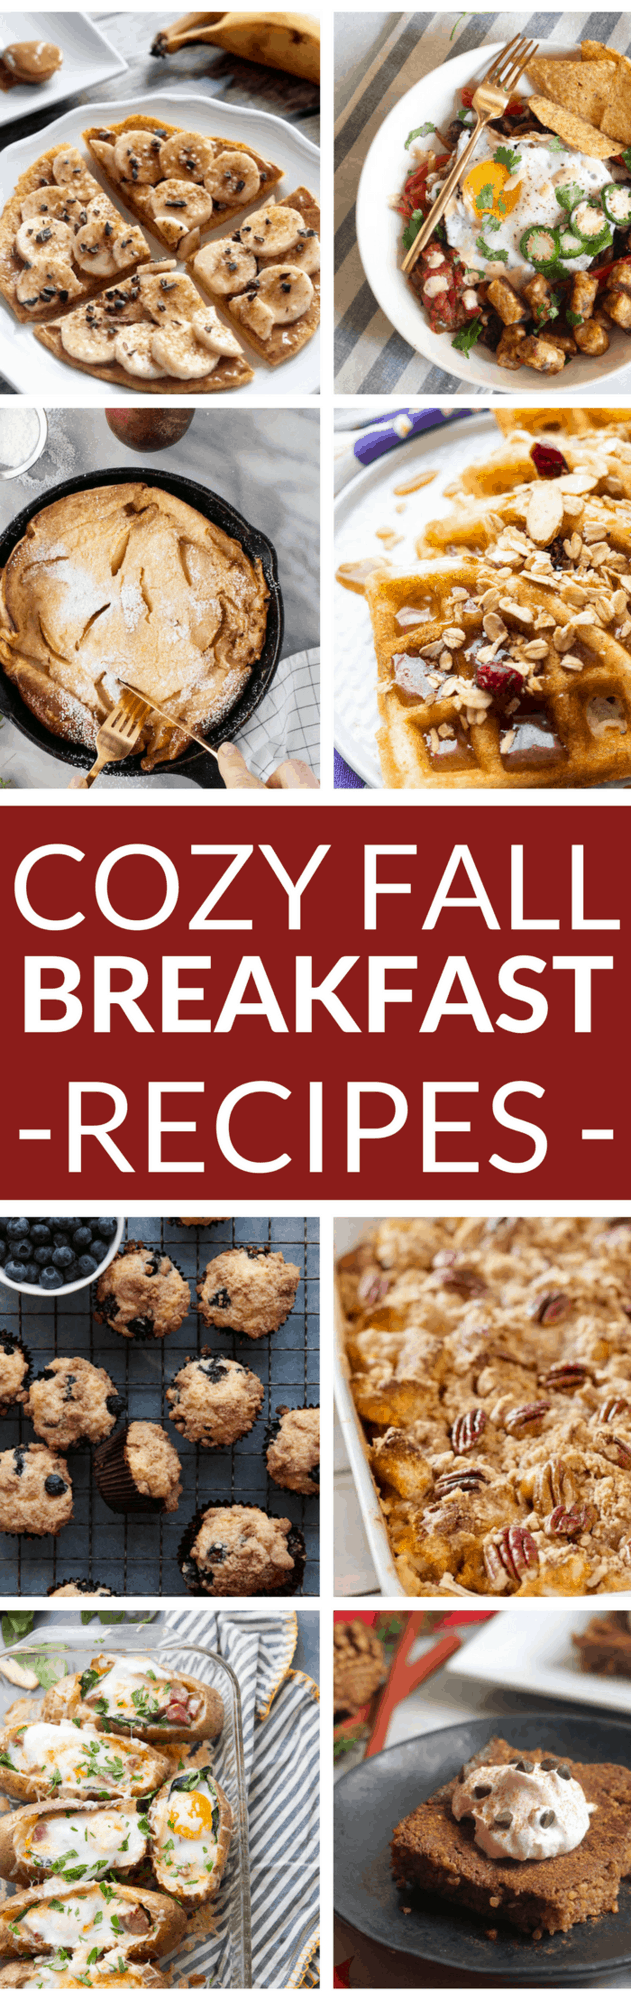 Communication on this topic: 25 Pumpkin Spice Recipes to Welcome Fall, 25-pumpkin-spice-recipes-to-welcome-fall/